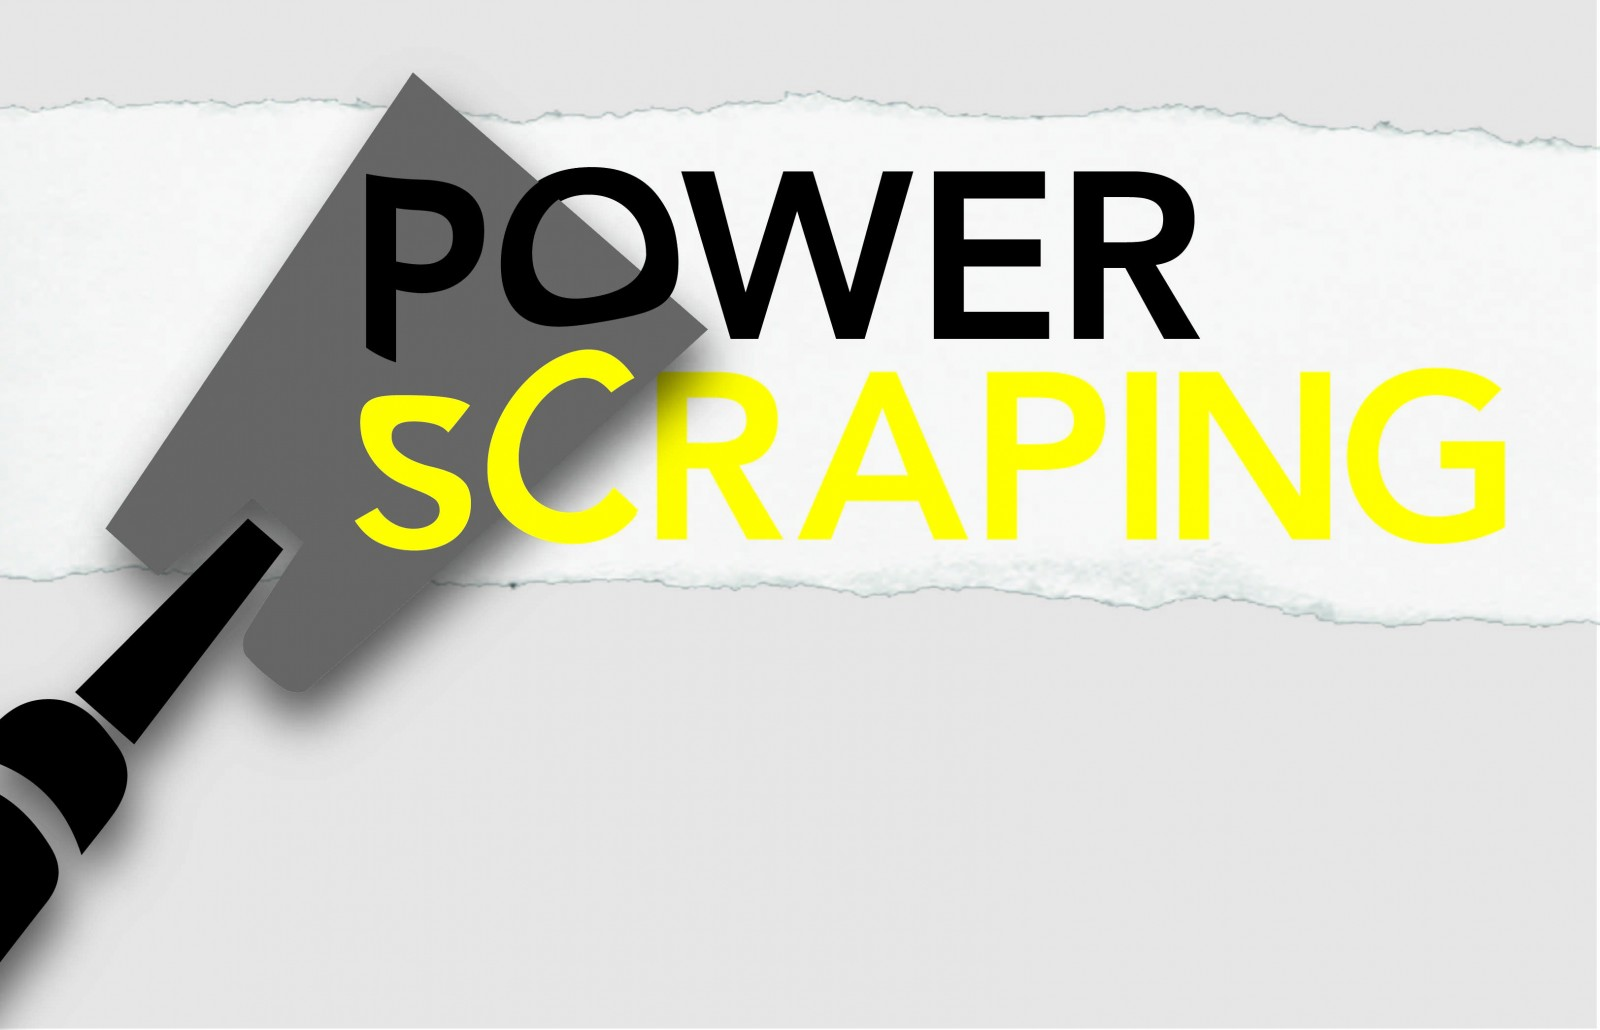 The underrated power of scraping with Excel